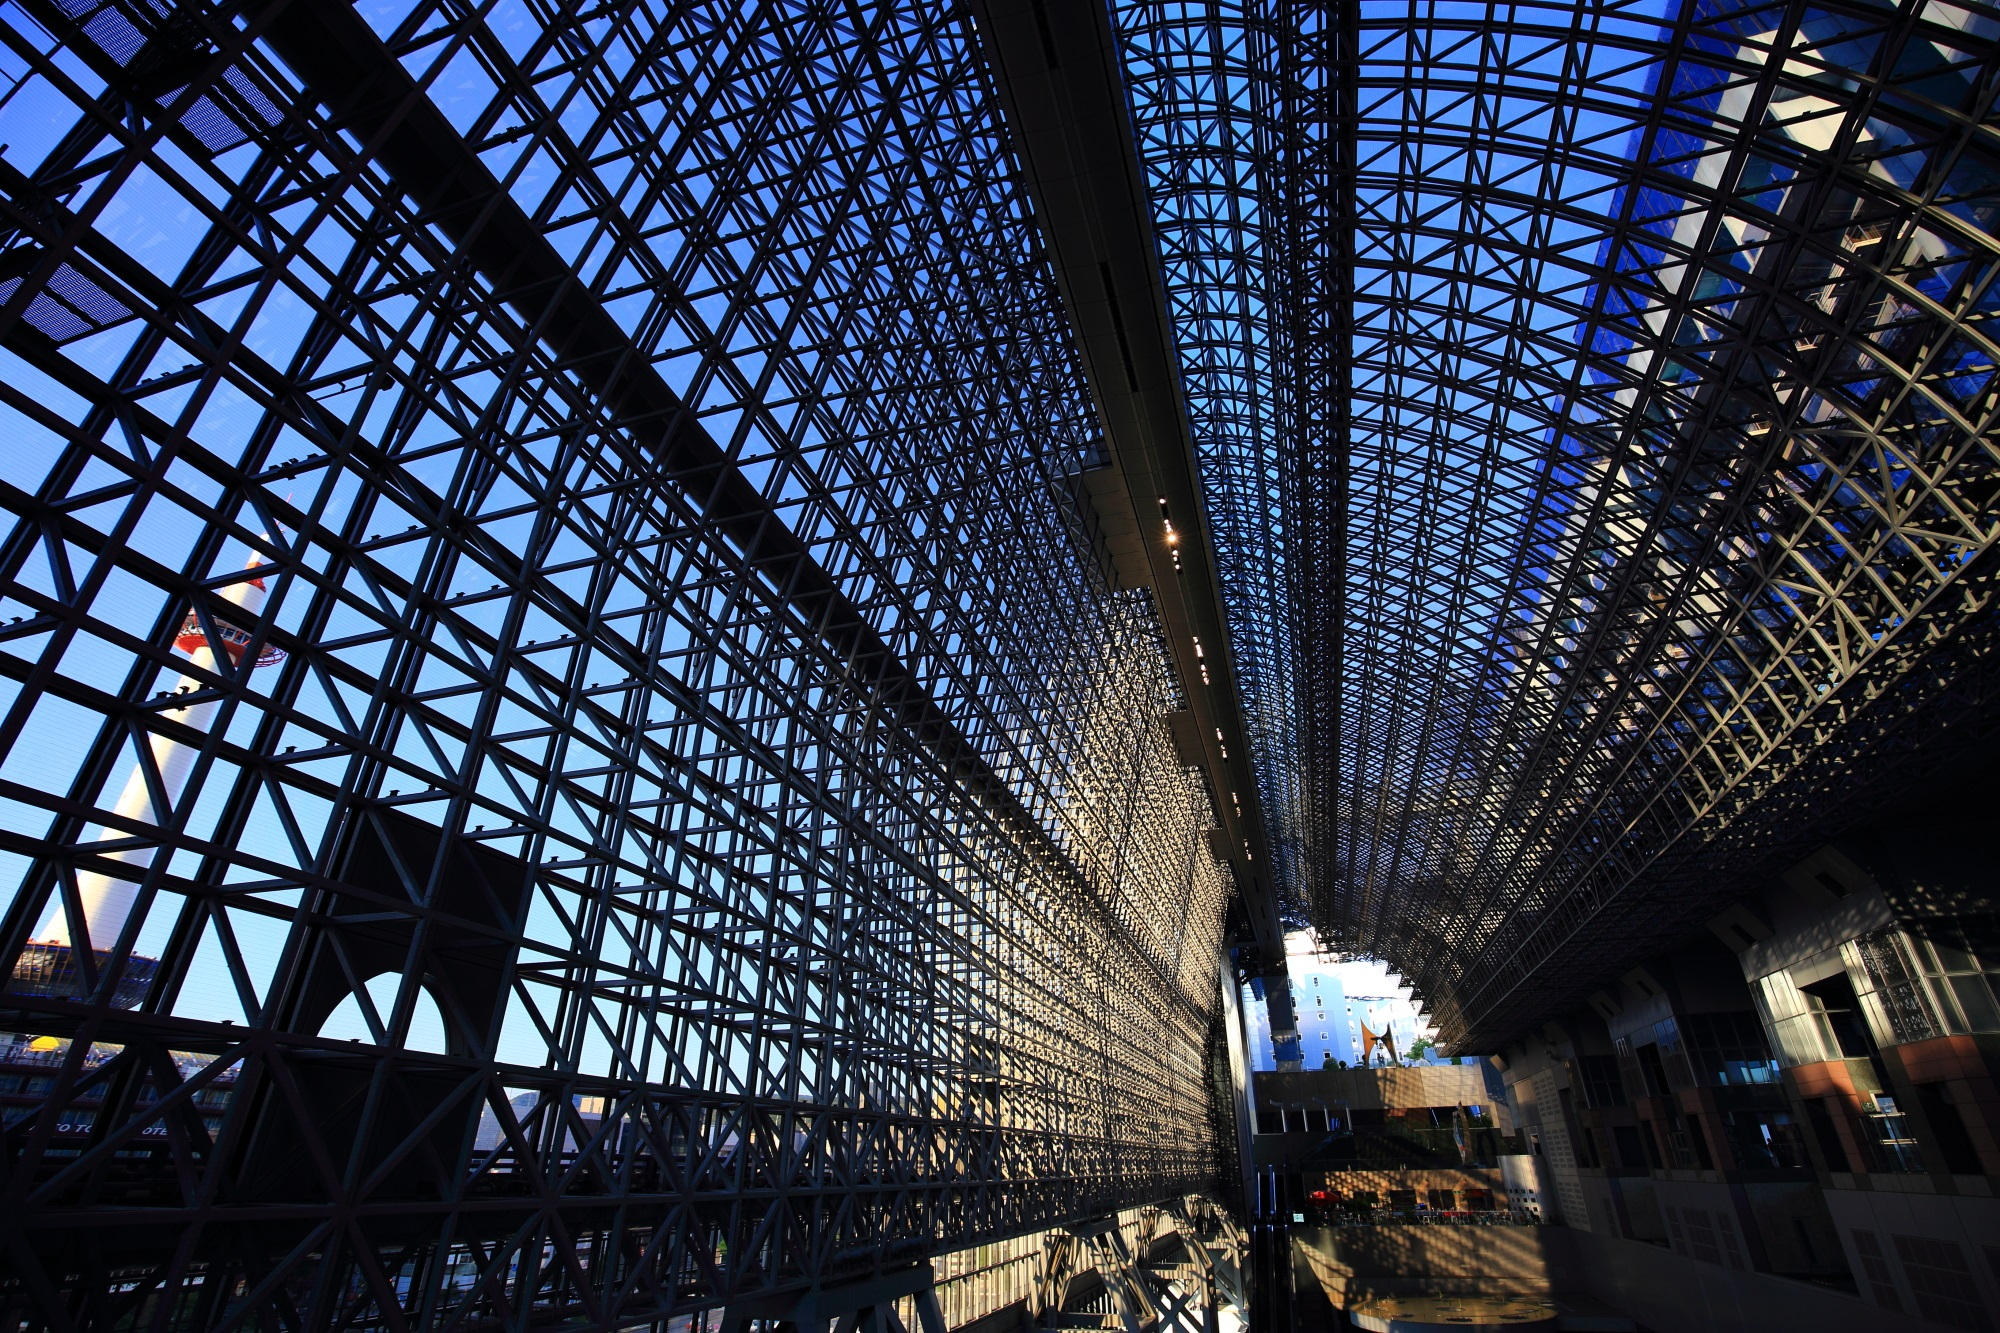 Clean glass and blue sky of Kyoto Station Building in Japan